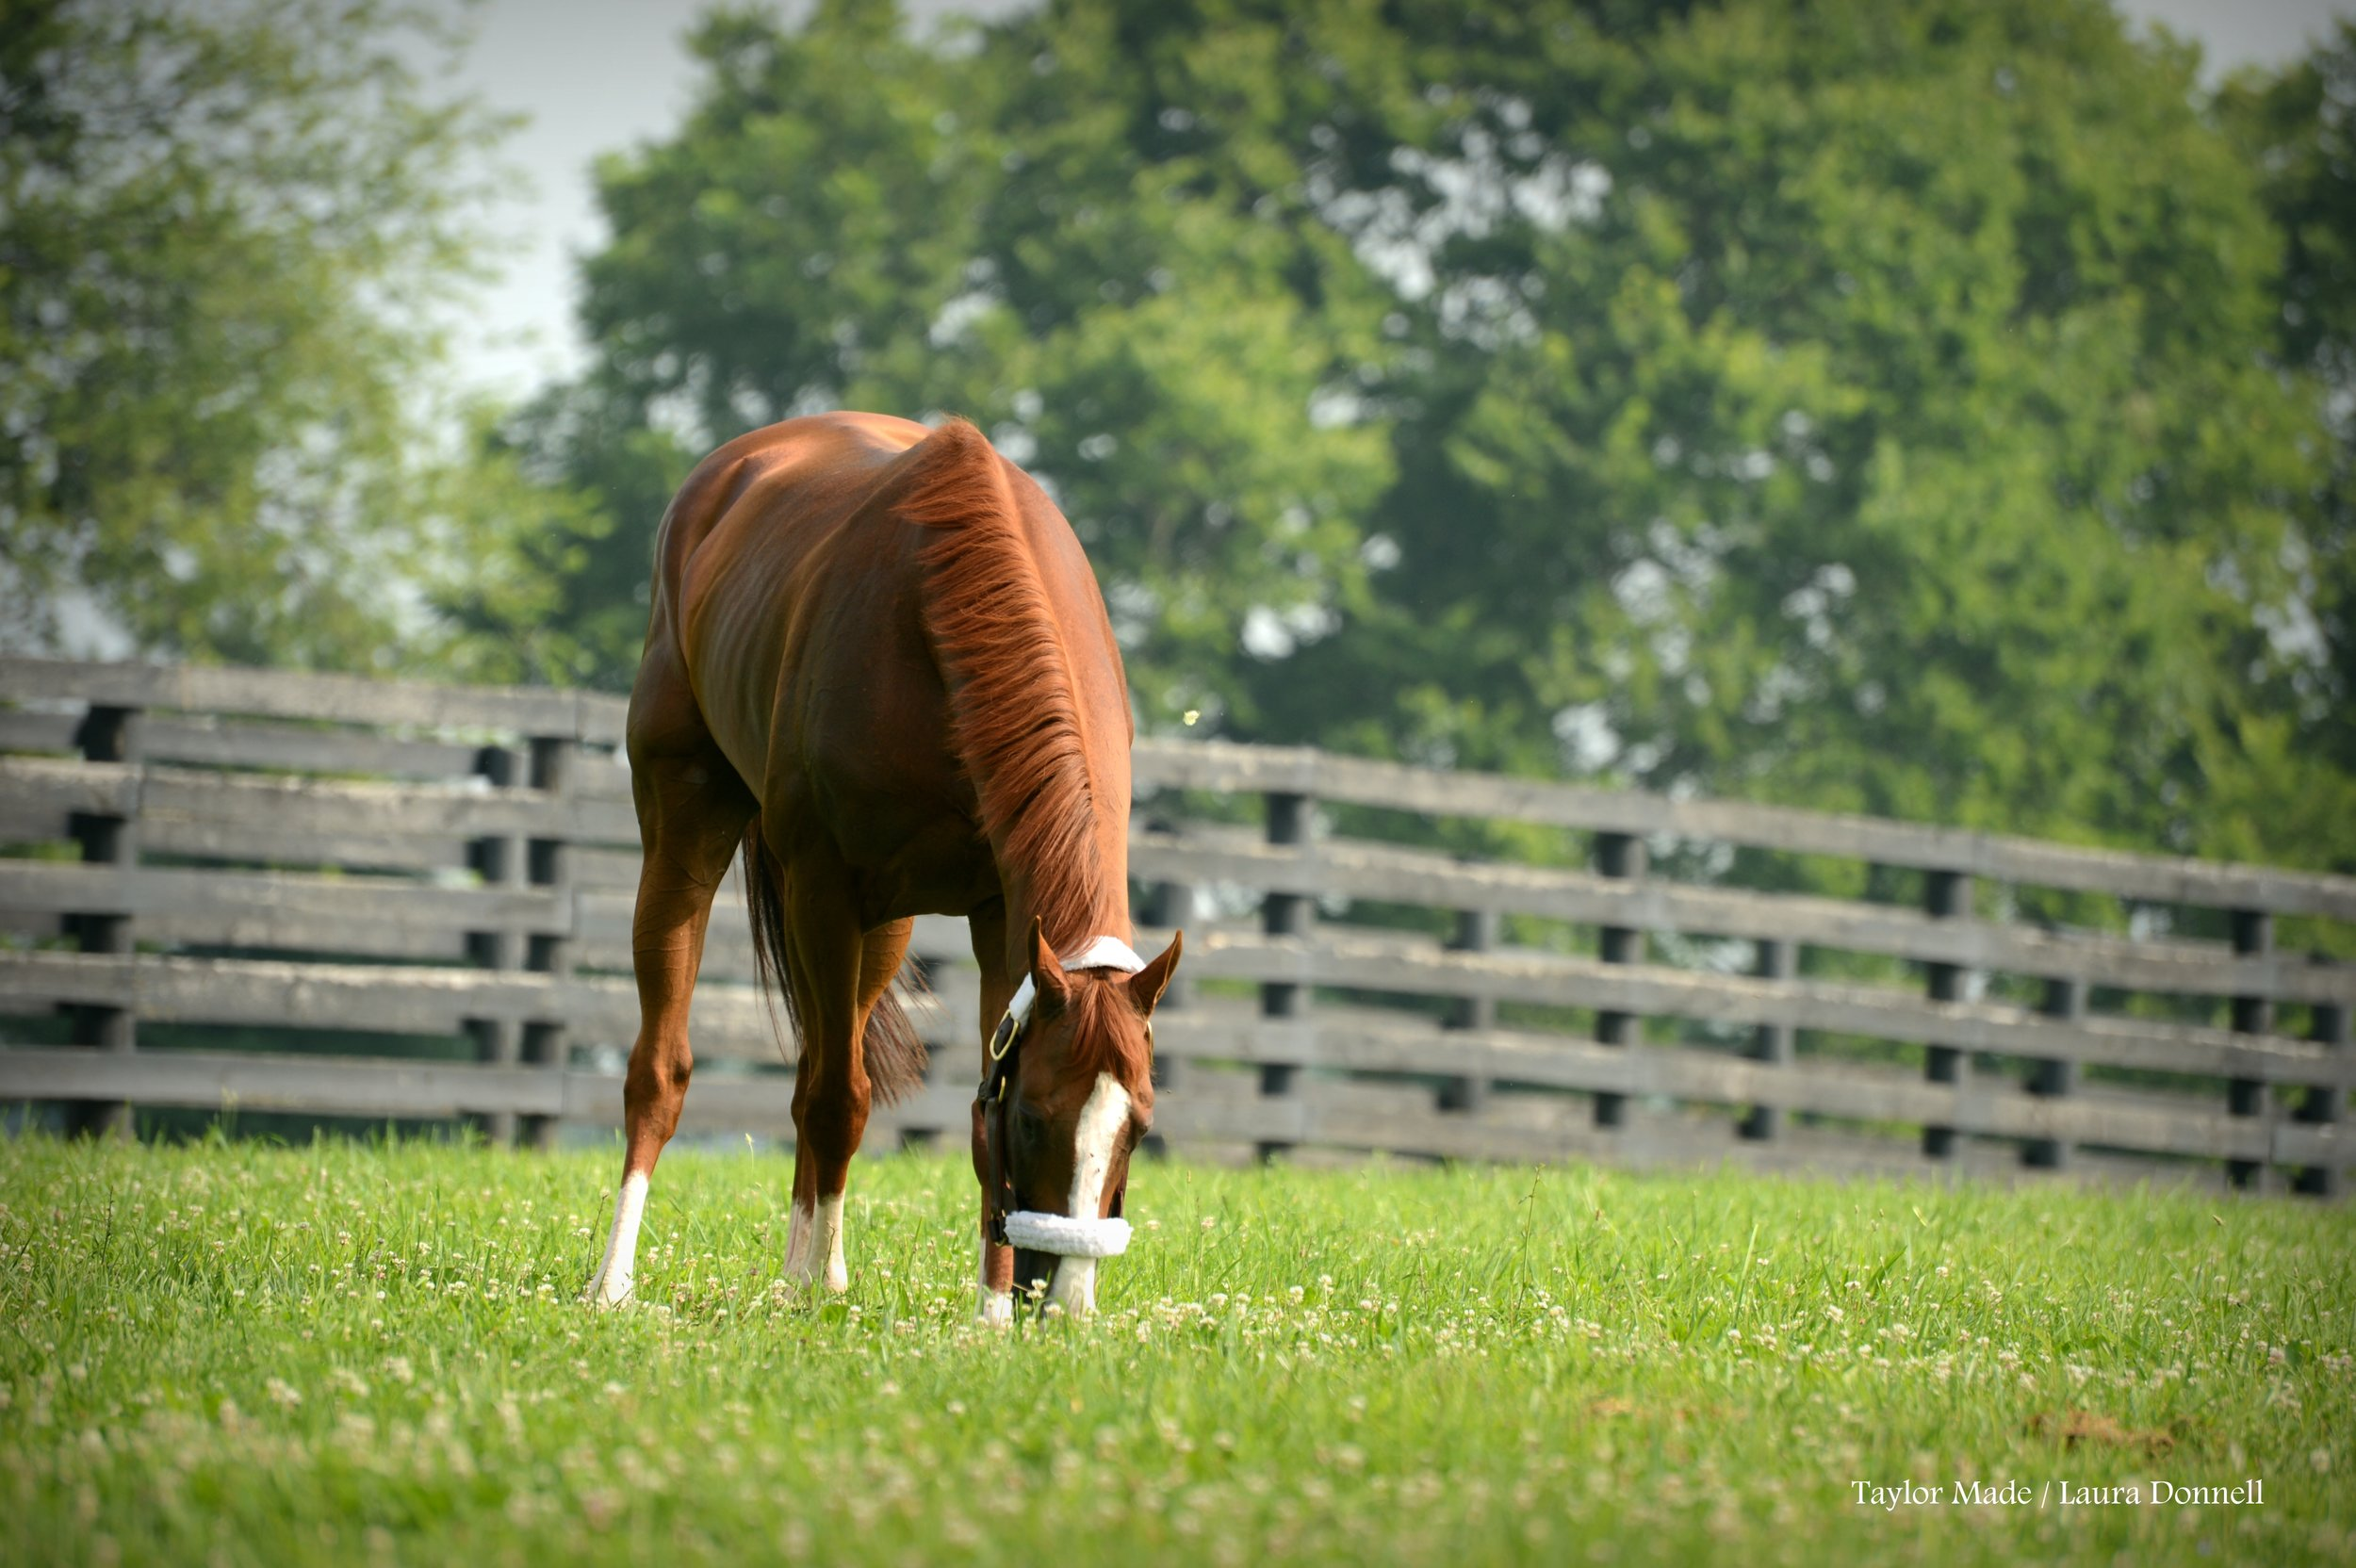 California Chrome grazing at Taylor Made Farm. Credit: Laura Donnell/Taylor Made